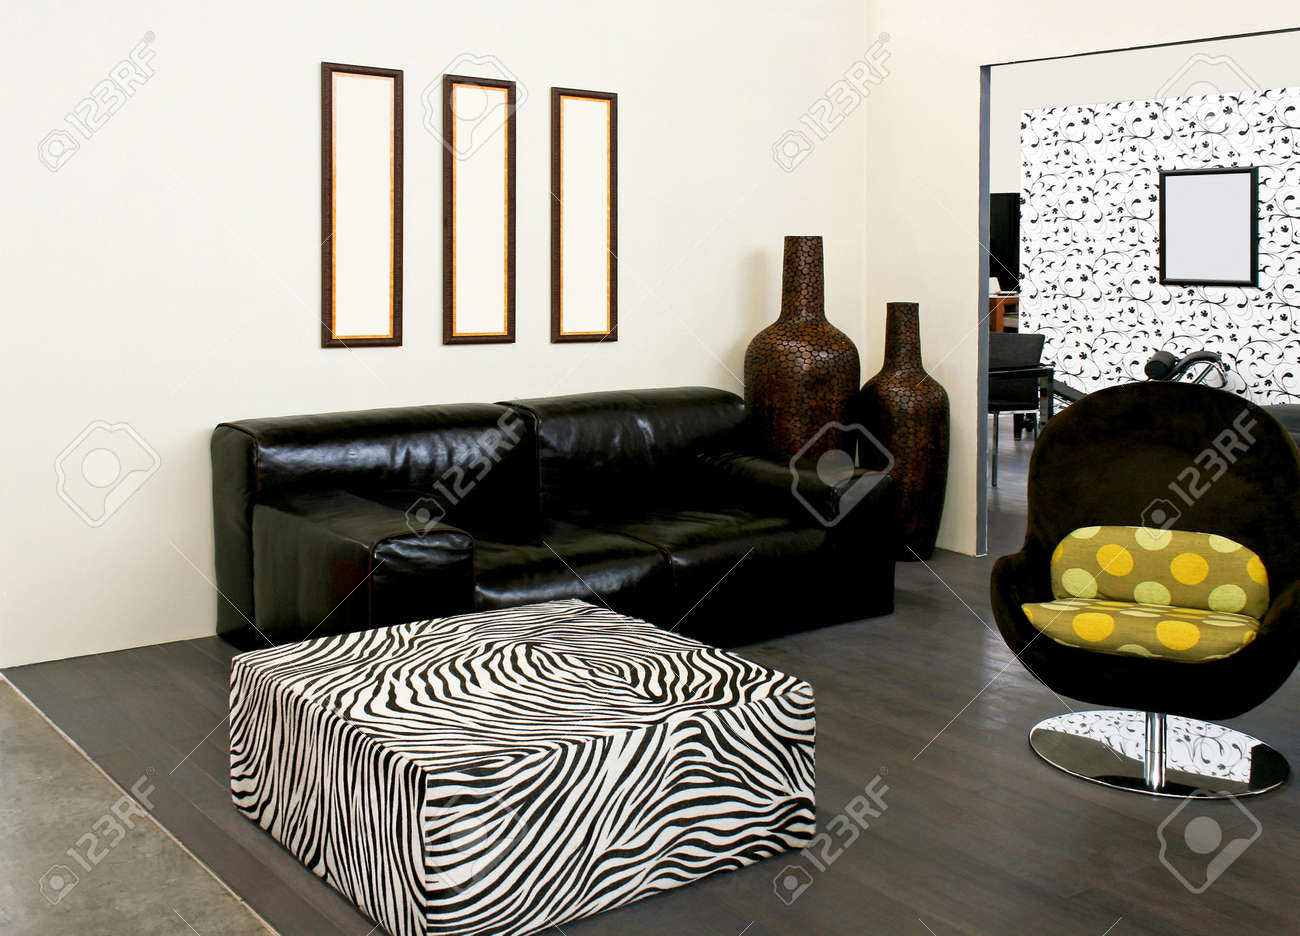 African Style Living Room Living Room In African Style With Zebra